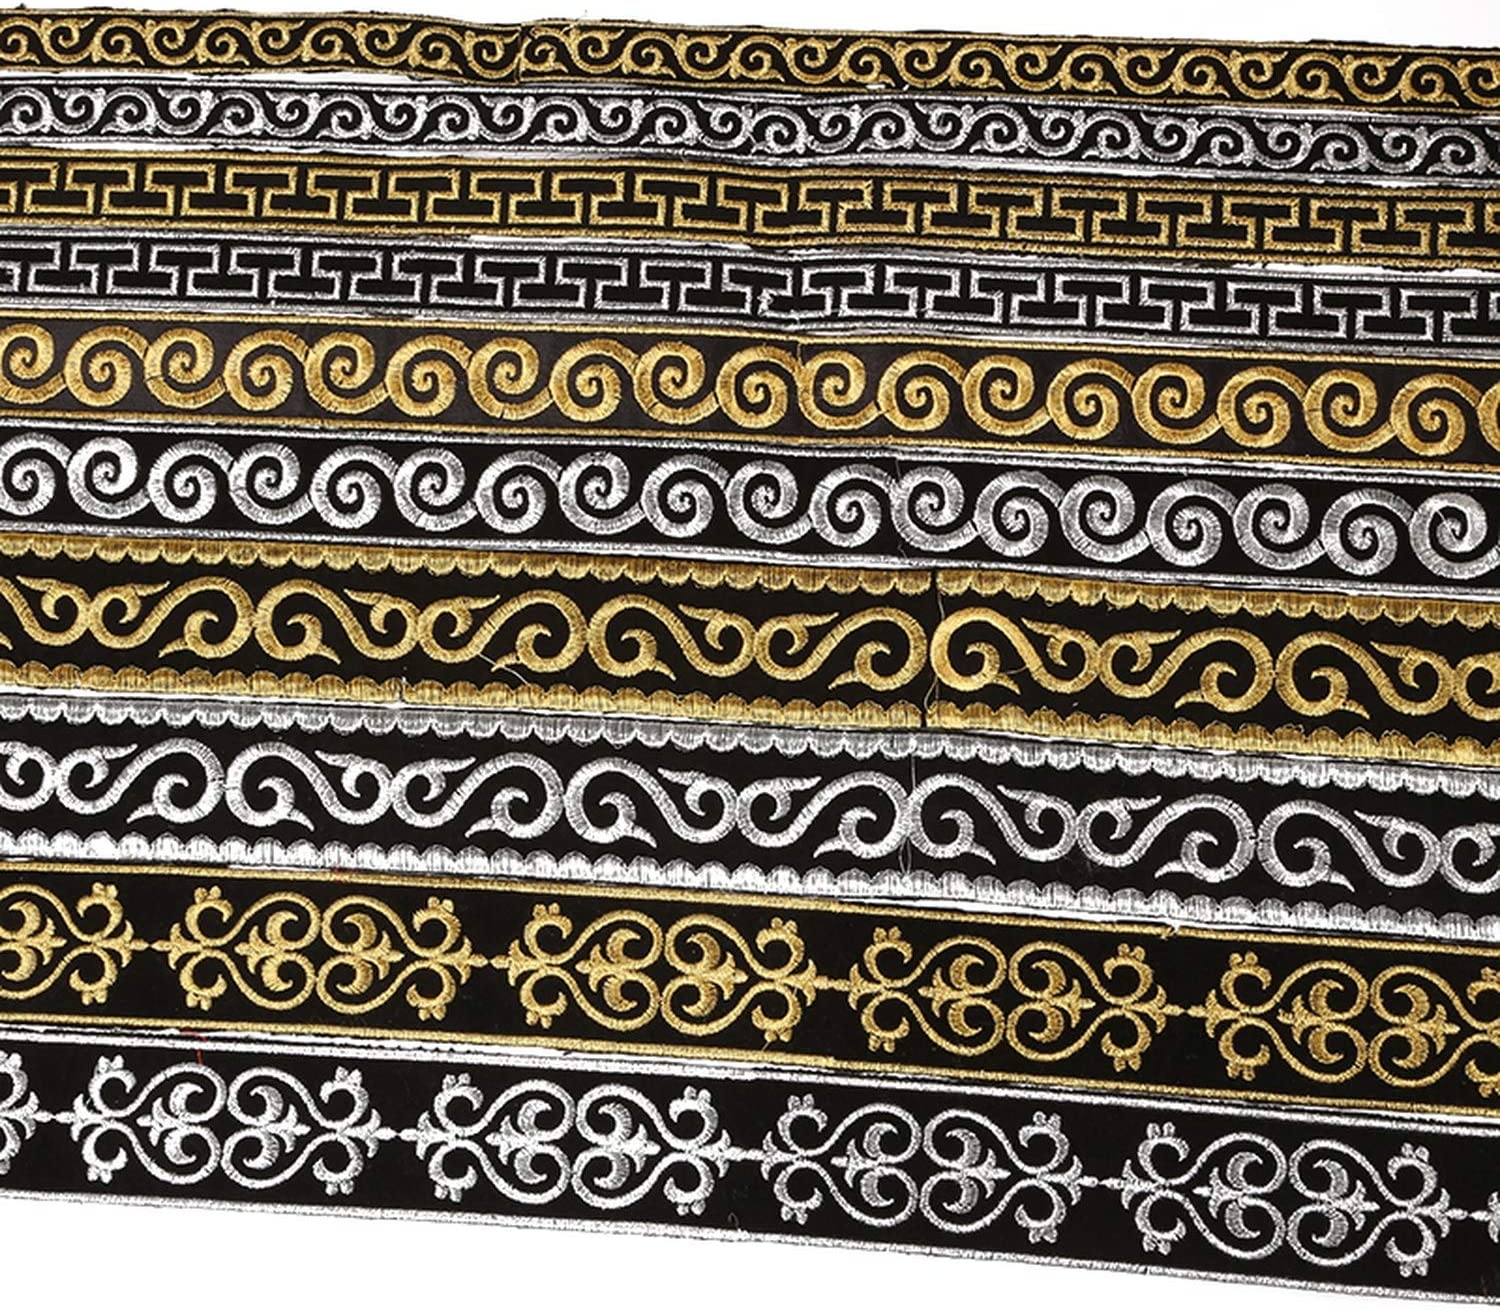 4 Meters//lot Width 2//2.5//3//5cm Gold Silver Ethnic Embroid Lace Trim Jacquard Ribbon for Garment Accessories DIY Craft Making,Gold 2.5cm